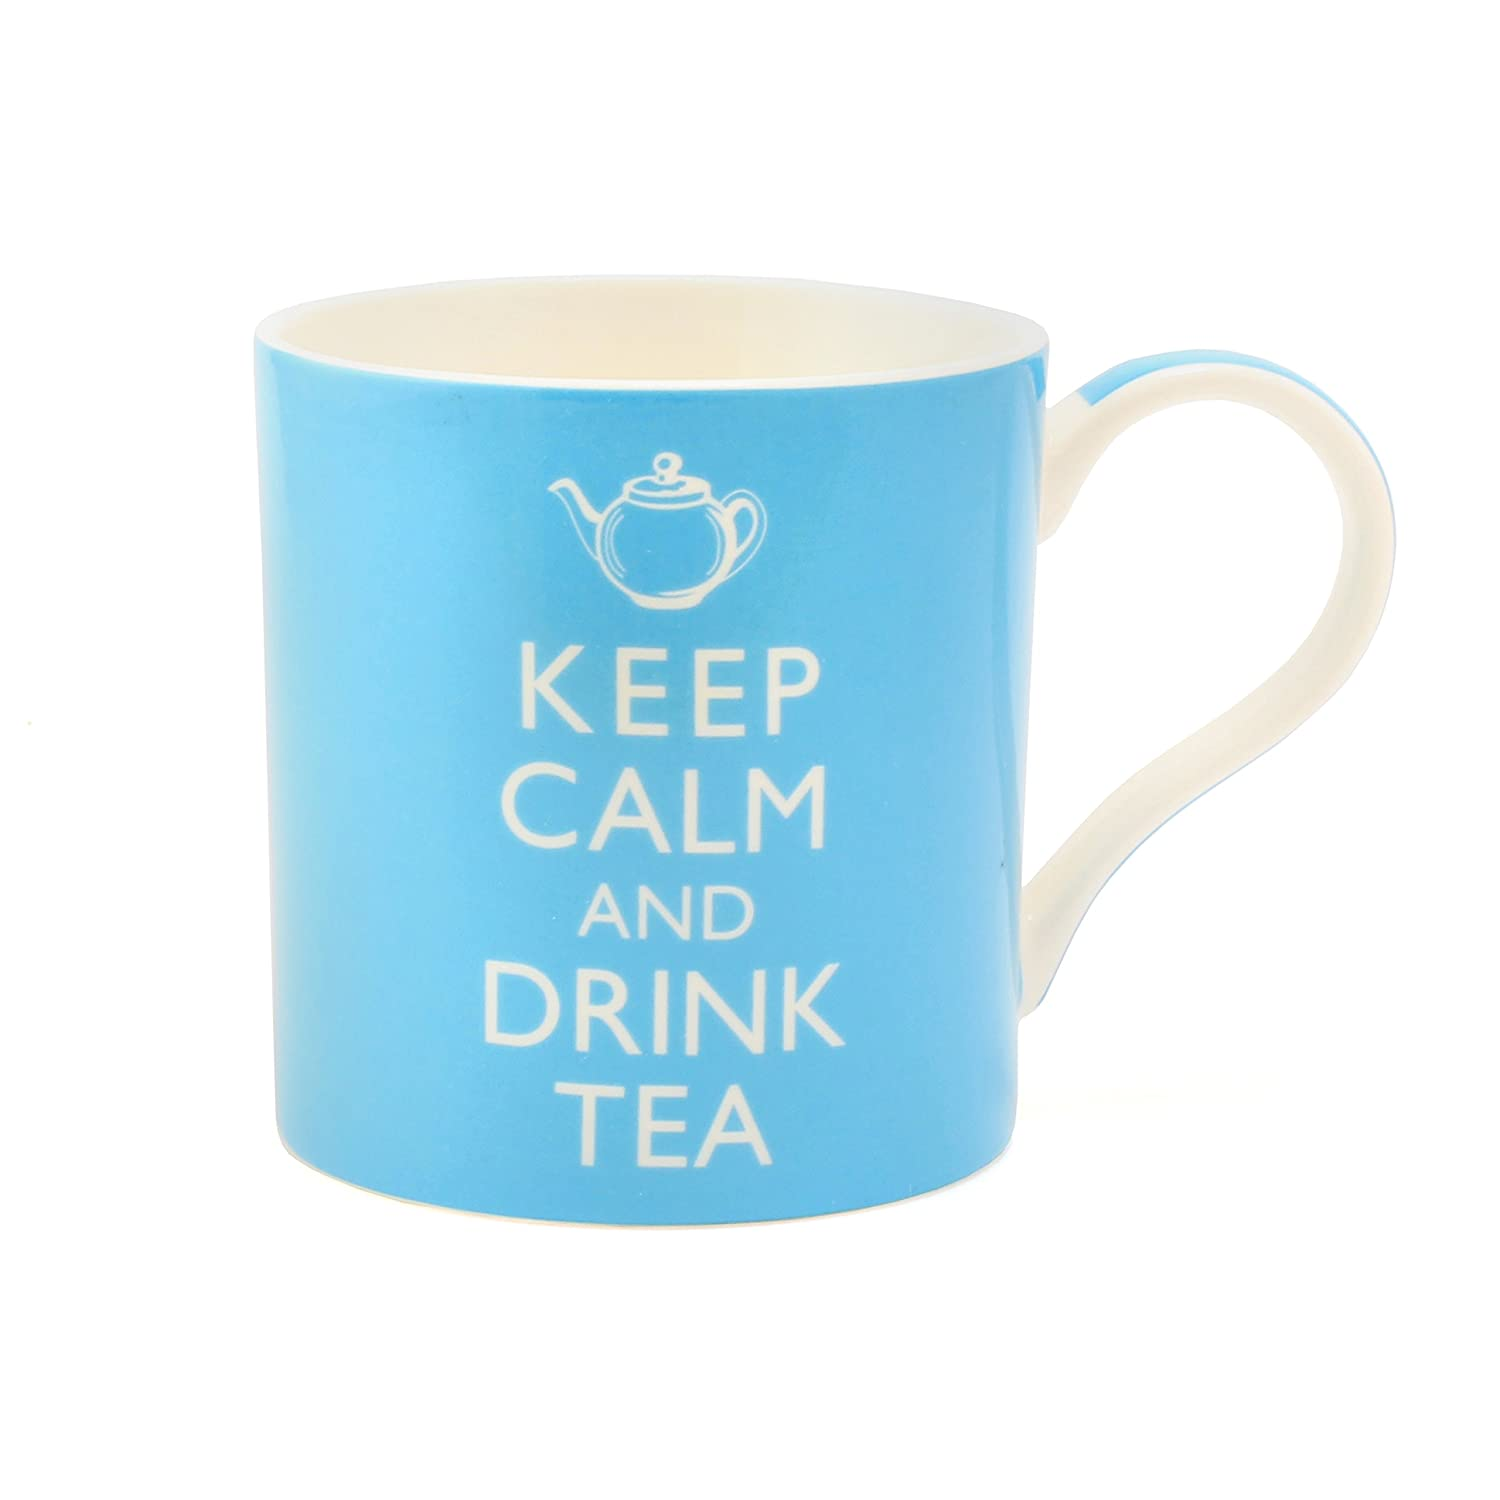 Keep Calm and Drink Tea Mug Perfect Ceramic Fine Bone China Mugs